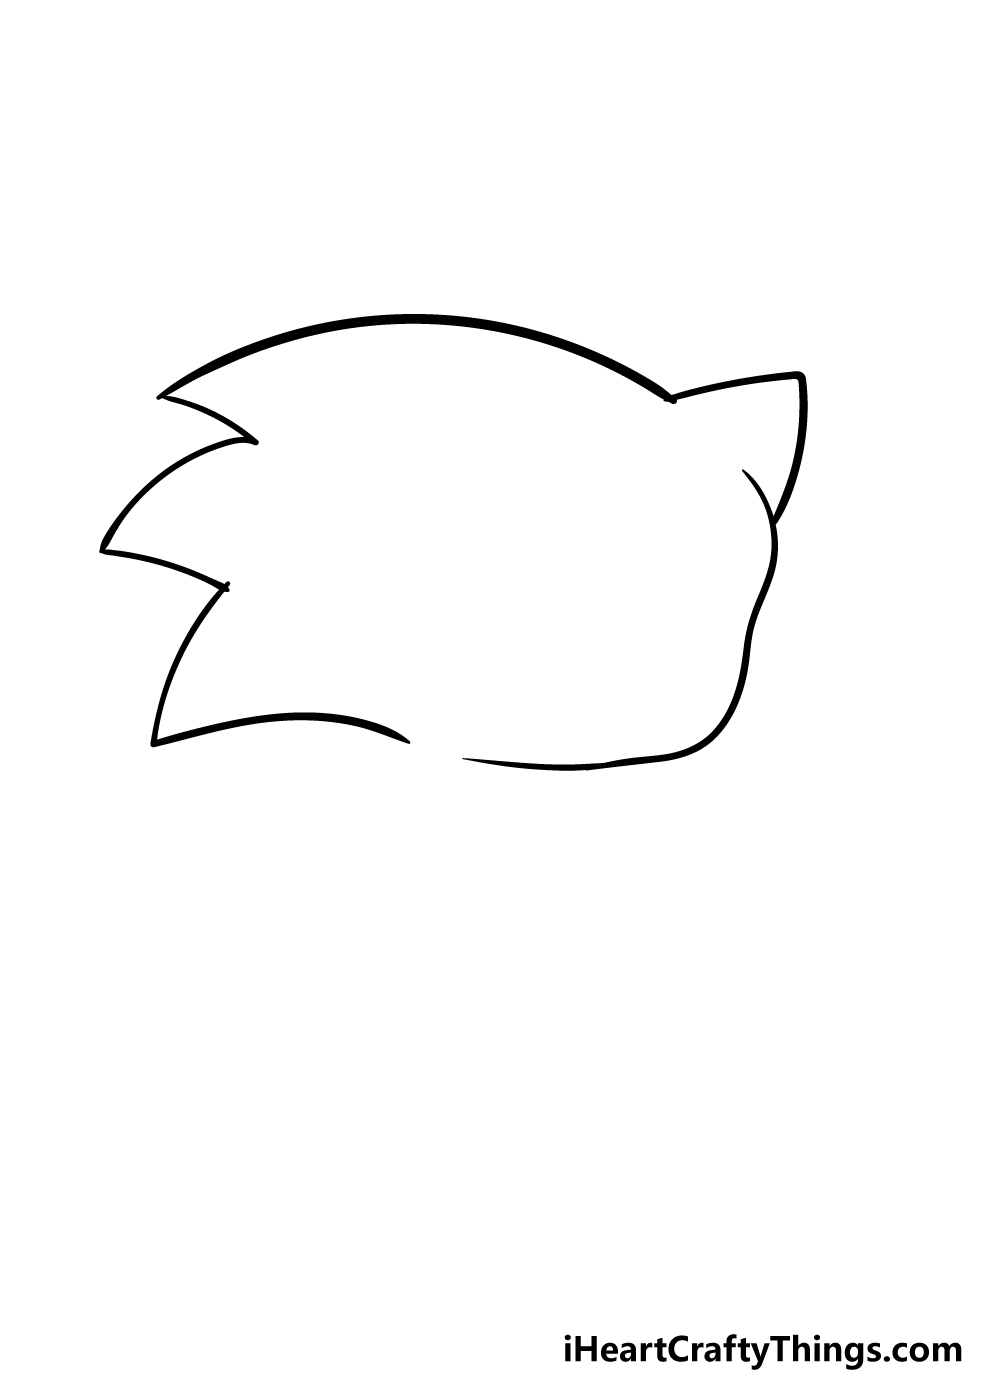 sonic drawing step 2